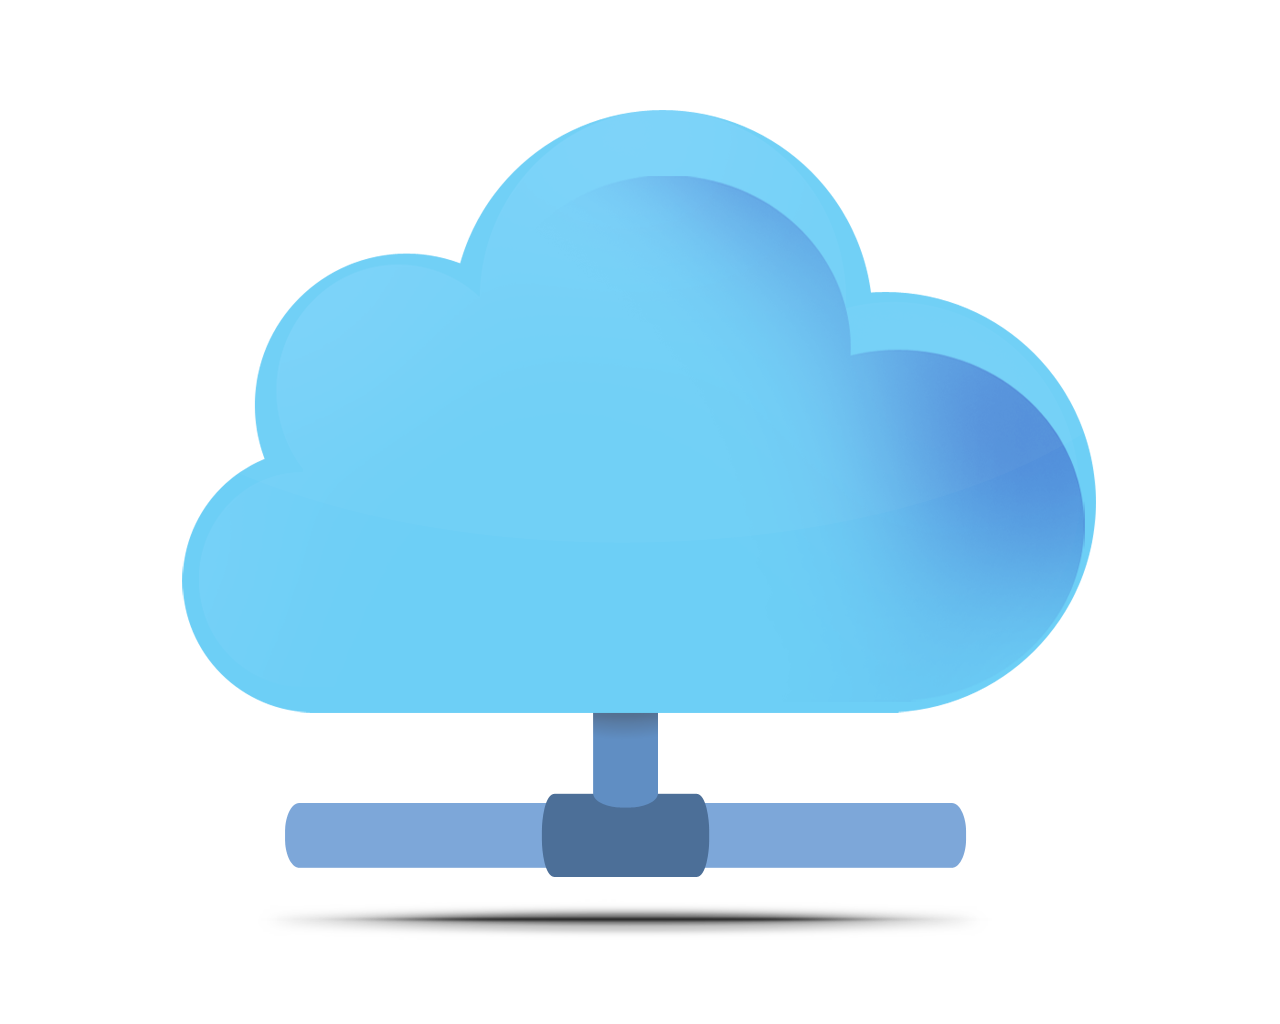 Clouds clipart cloud computing. Icon storage pinterest and